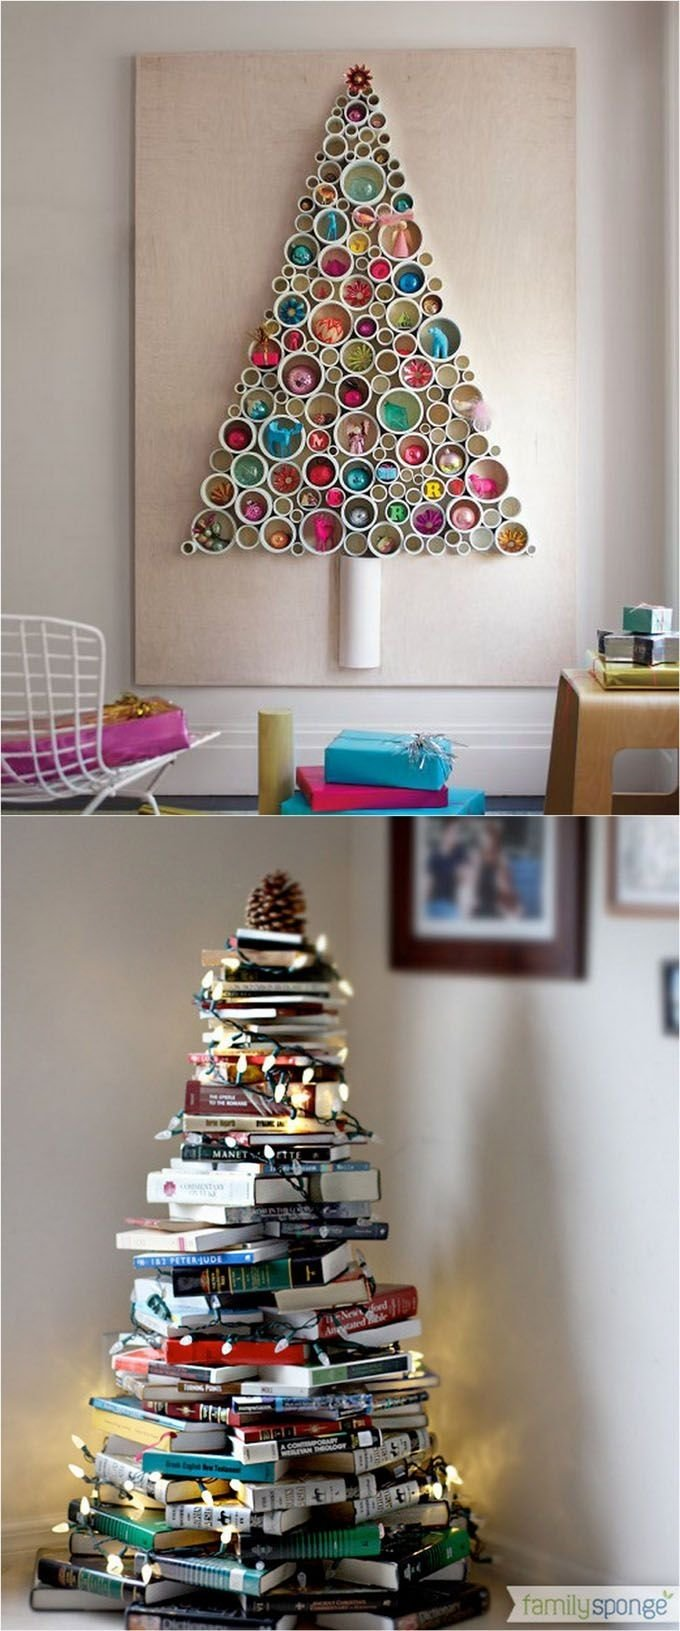 10 Cute Christmas Decorations Ideas To Make amazing christmas decoration ideas diy christmas trees unique